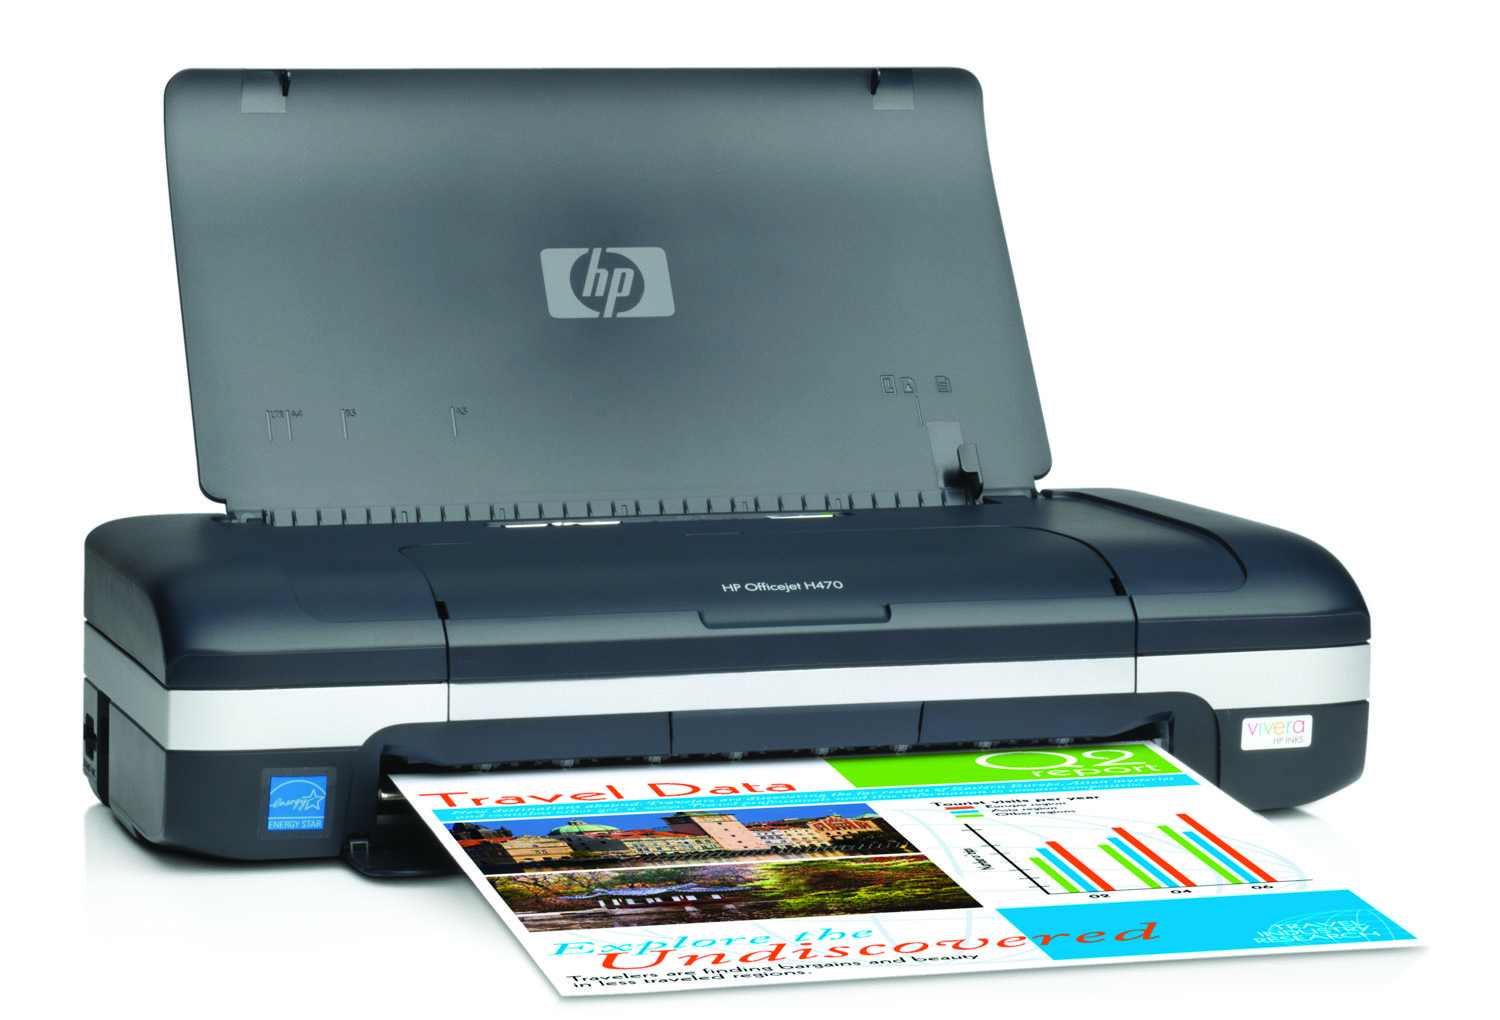 Printer+HP Daftar Harga Printer HP Juli 2013